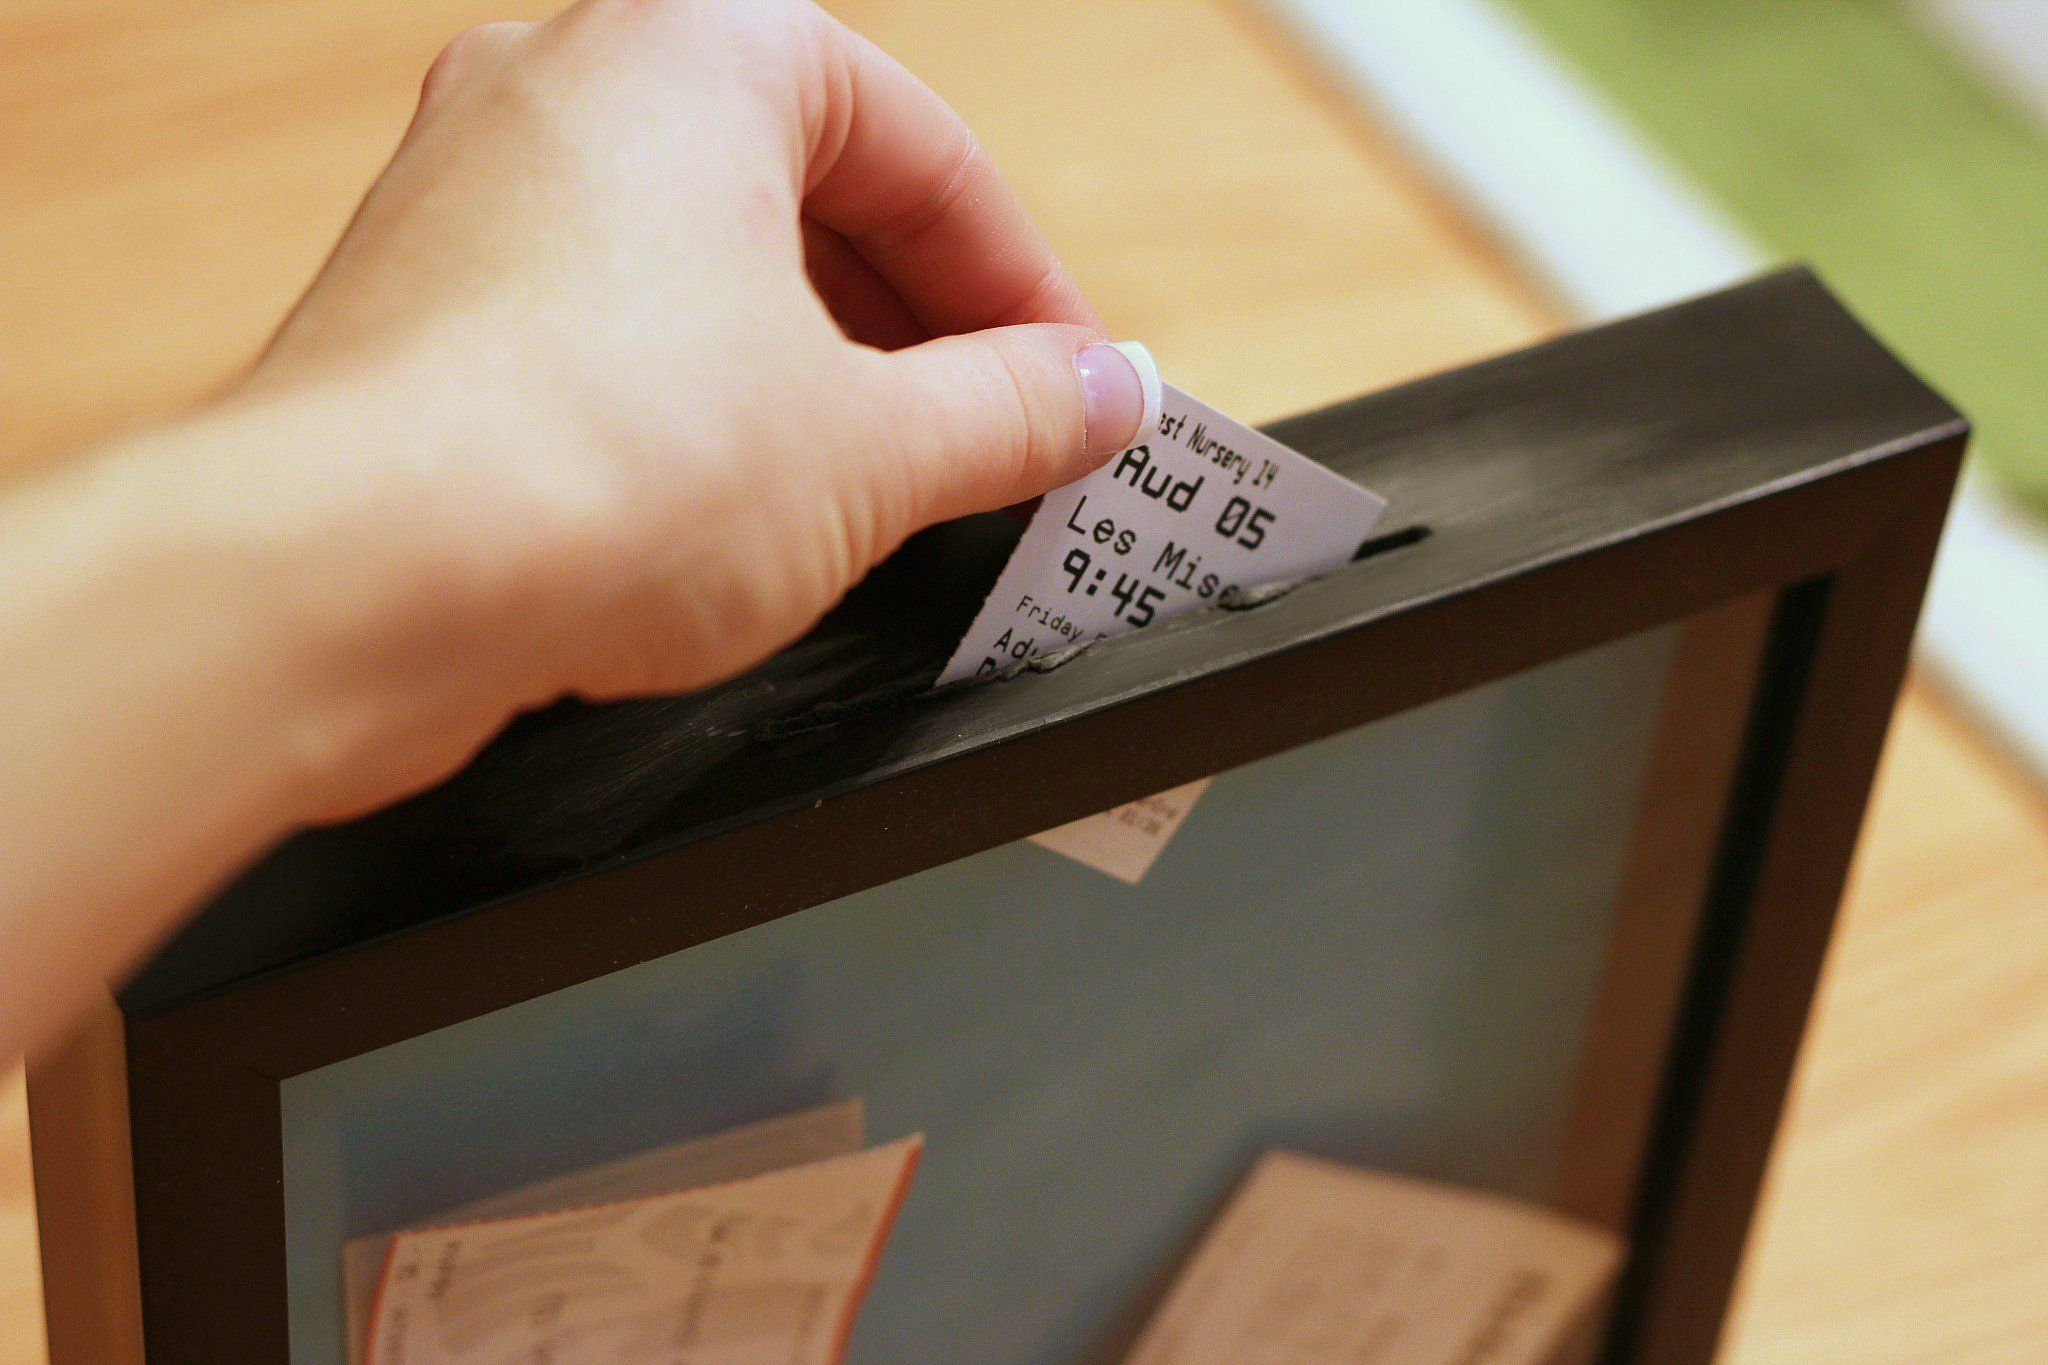 use dremel to cut slit in top of store bought shadow box frame to create ticket stub display - Diy Shadow Box Frame